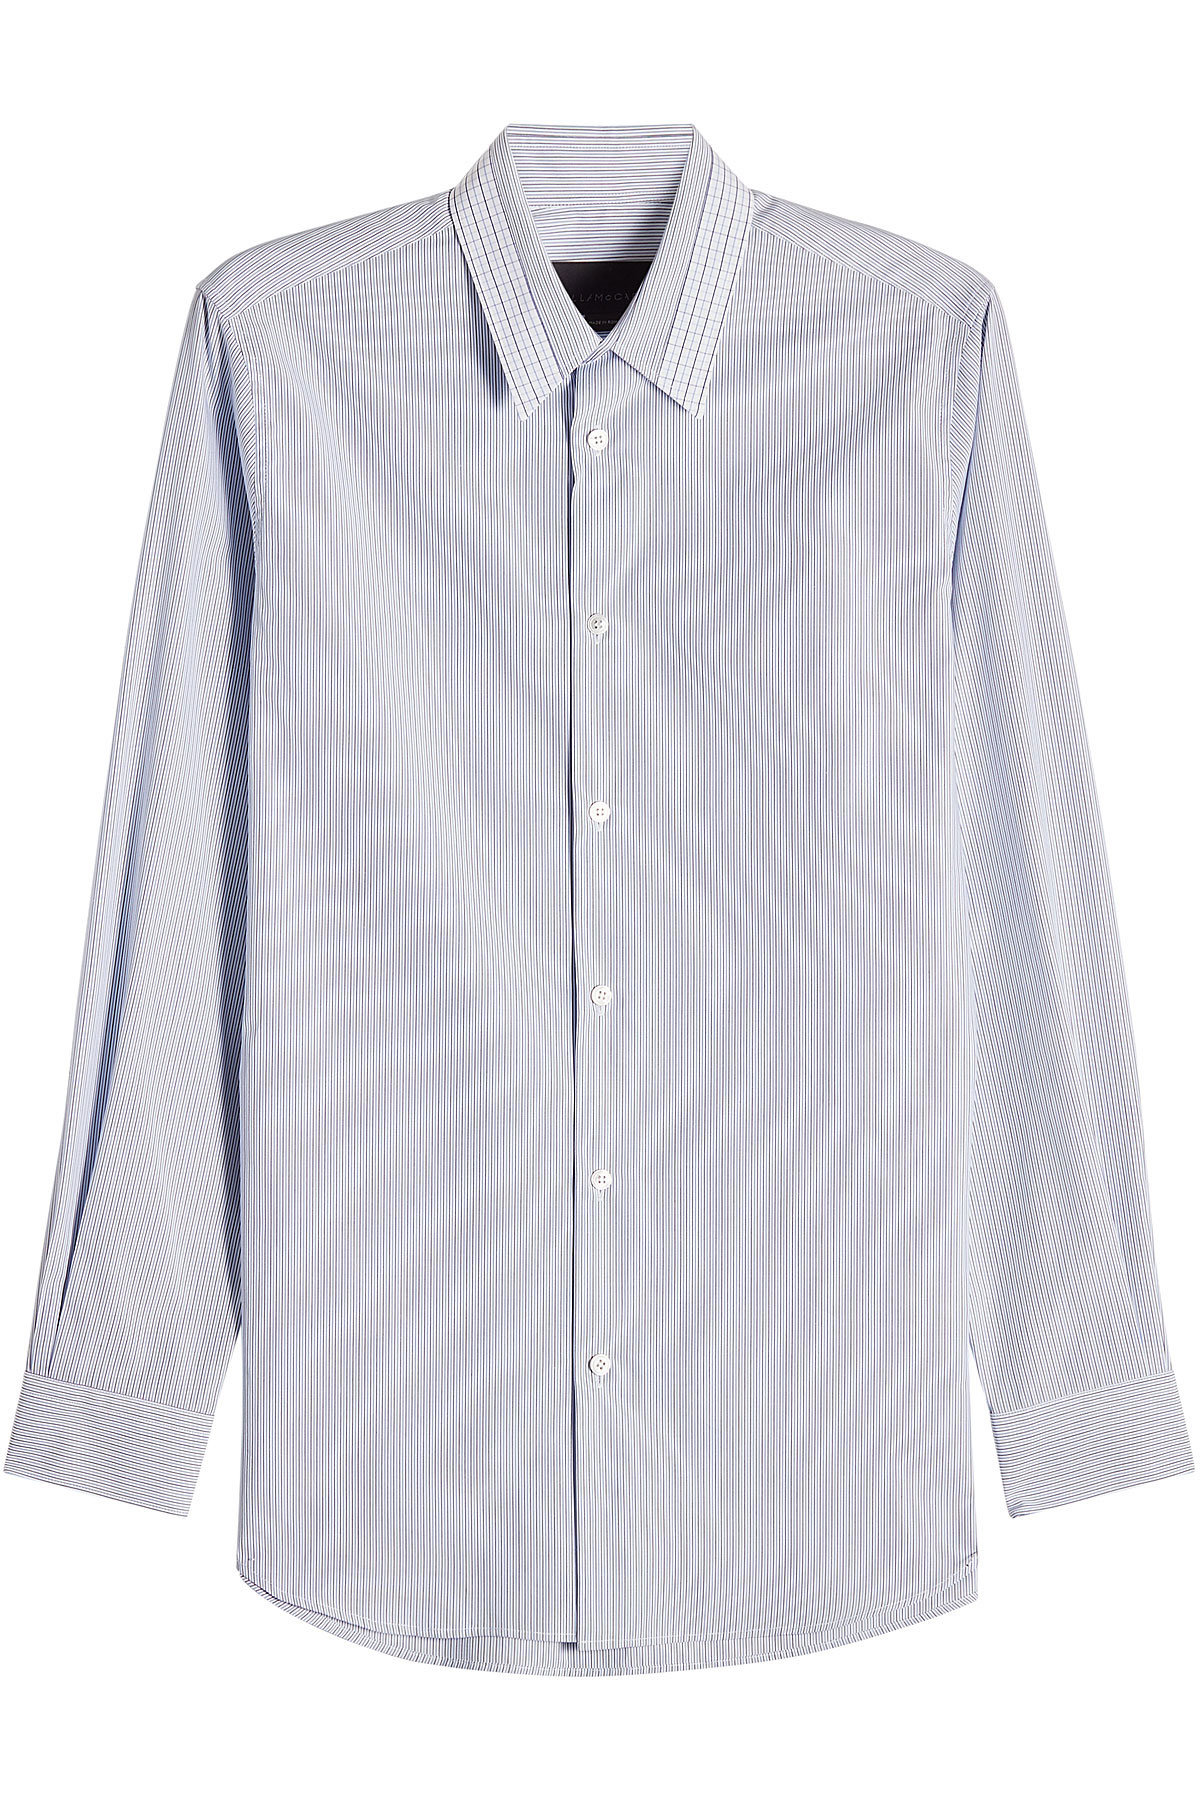 Robert Cotton Shirt | STELLA MCCARTNEY